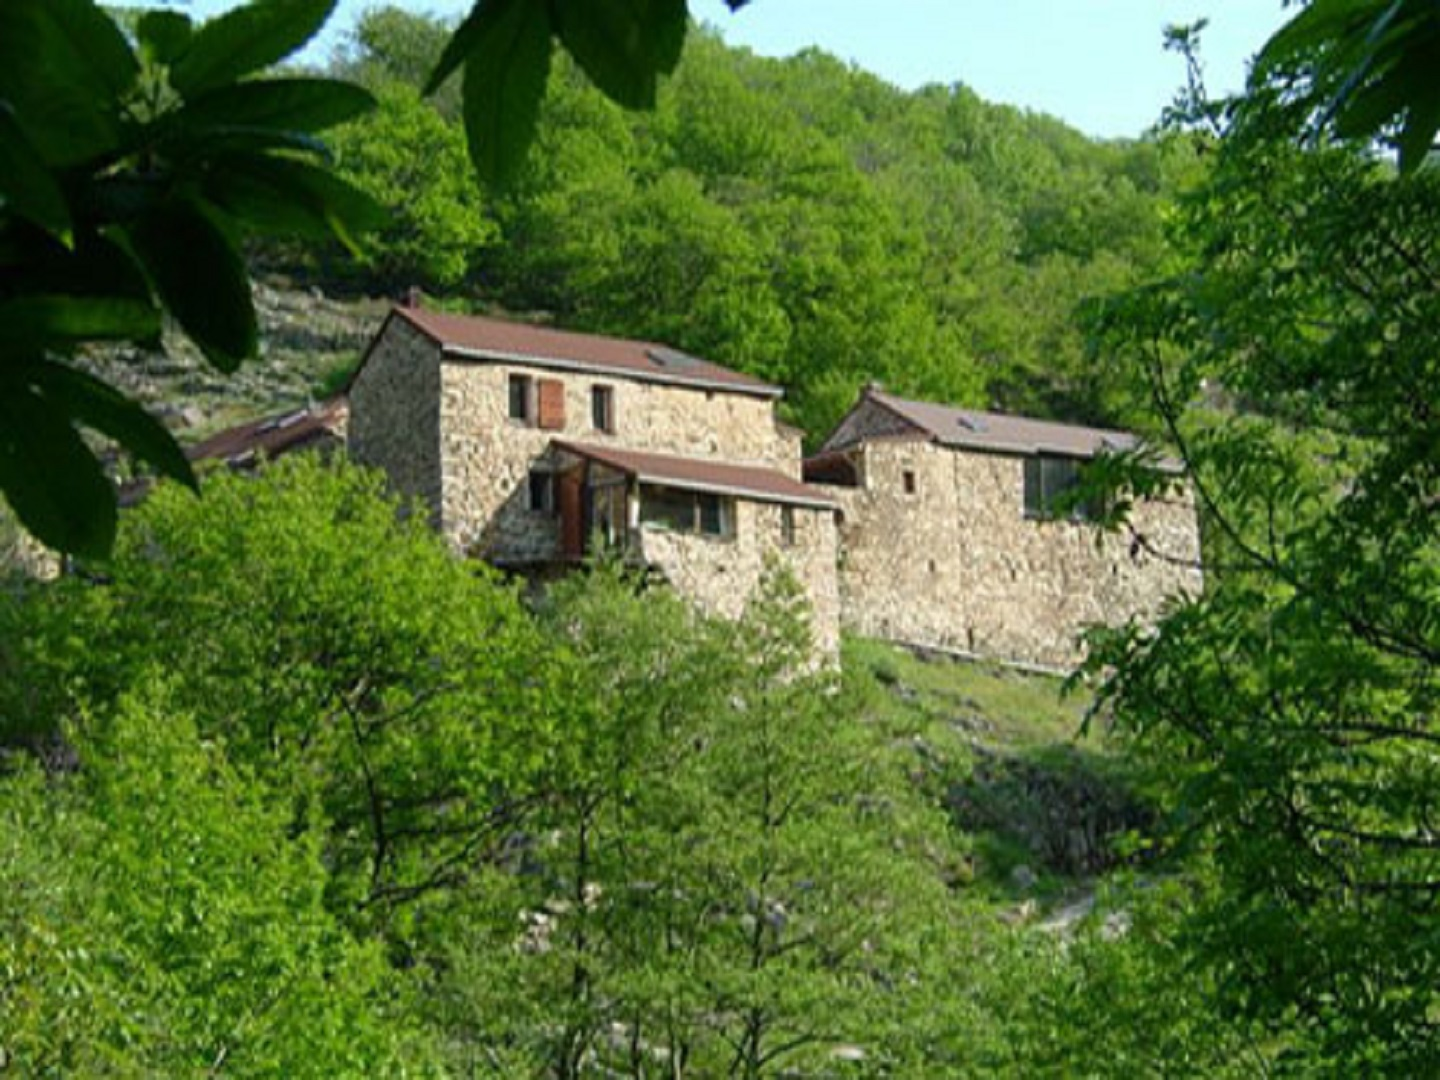 A house with bushes in the background at Moulin Deleuze.